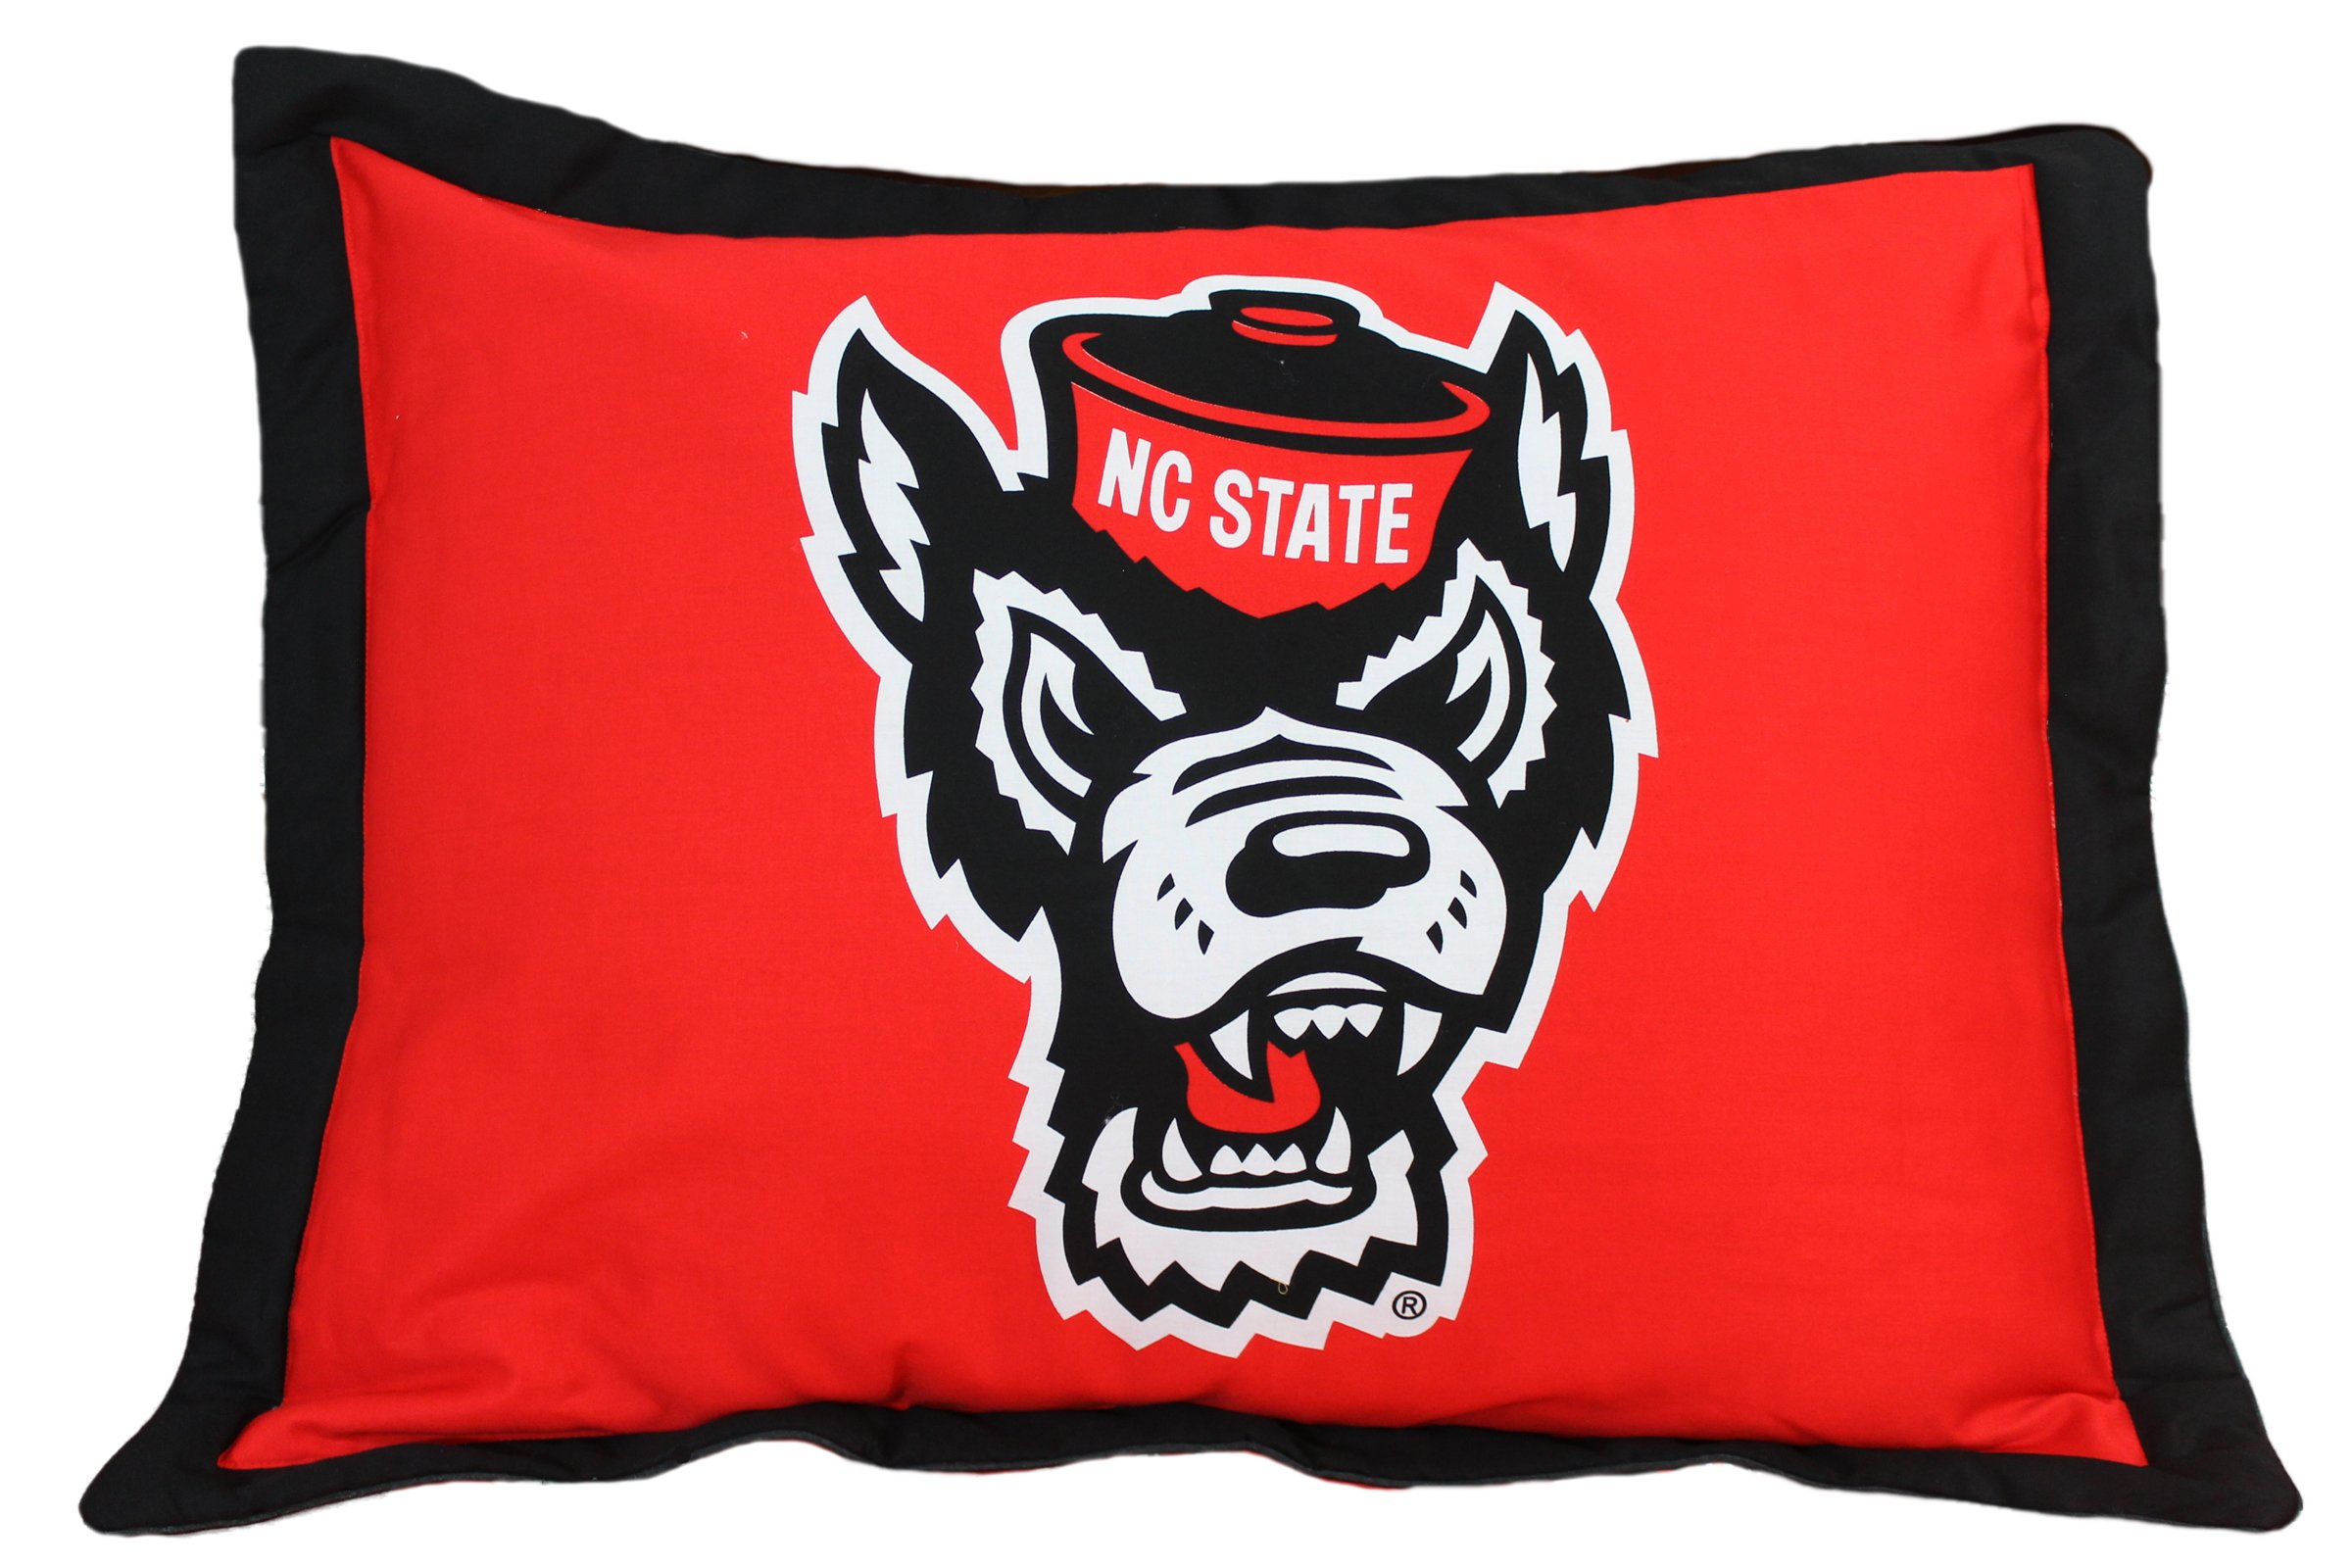 North Carolina State Wolfpack (2) Piece Twin Reversible Comforter Set and One Matching Window Curtain Valance - Entire Set includes: (1) Twin Reversible Comforter, (1) Standard Pillow Sham and (1) Matching Window Curtain Valance - Save Big By Bundling!